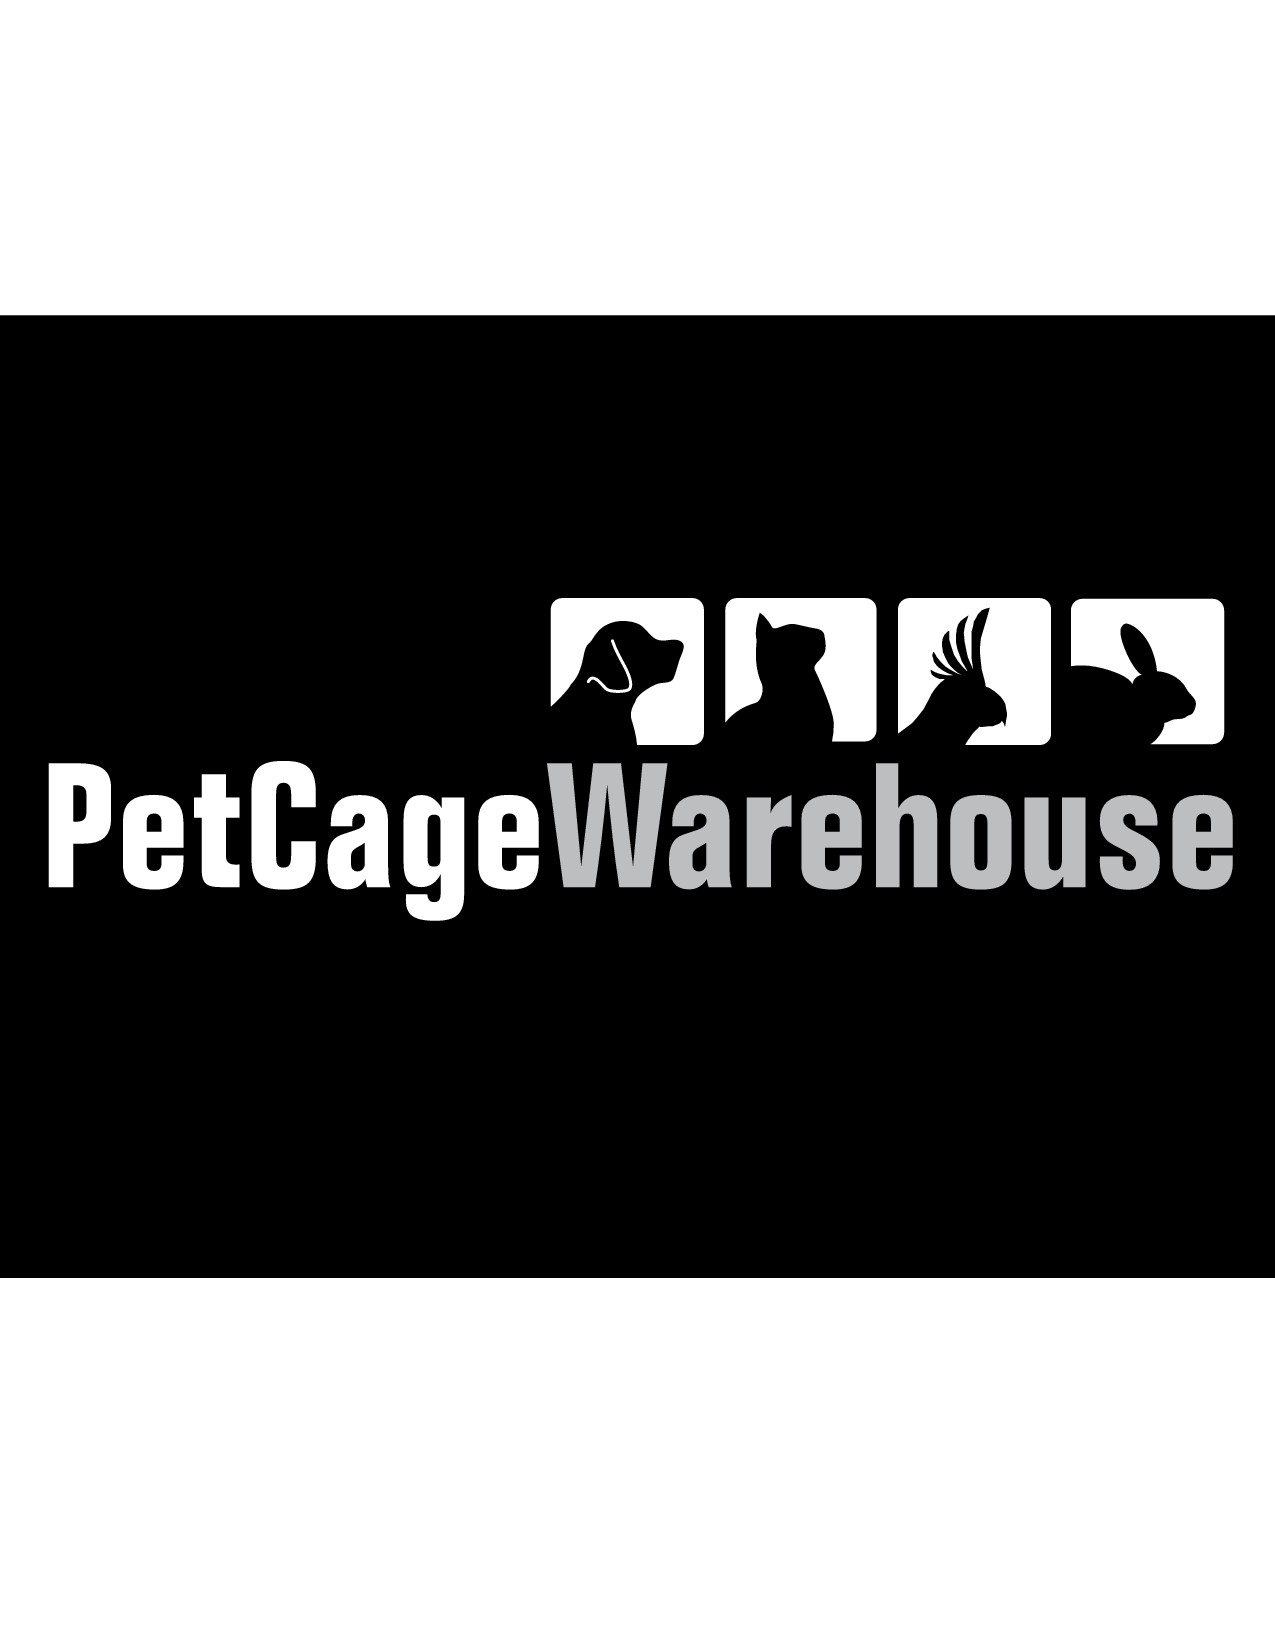 Create a Logo for a Pet Cage and Pet Merchandise Company